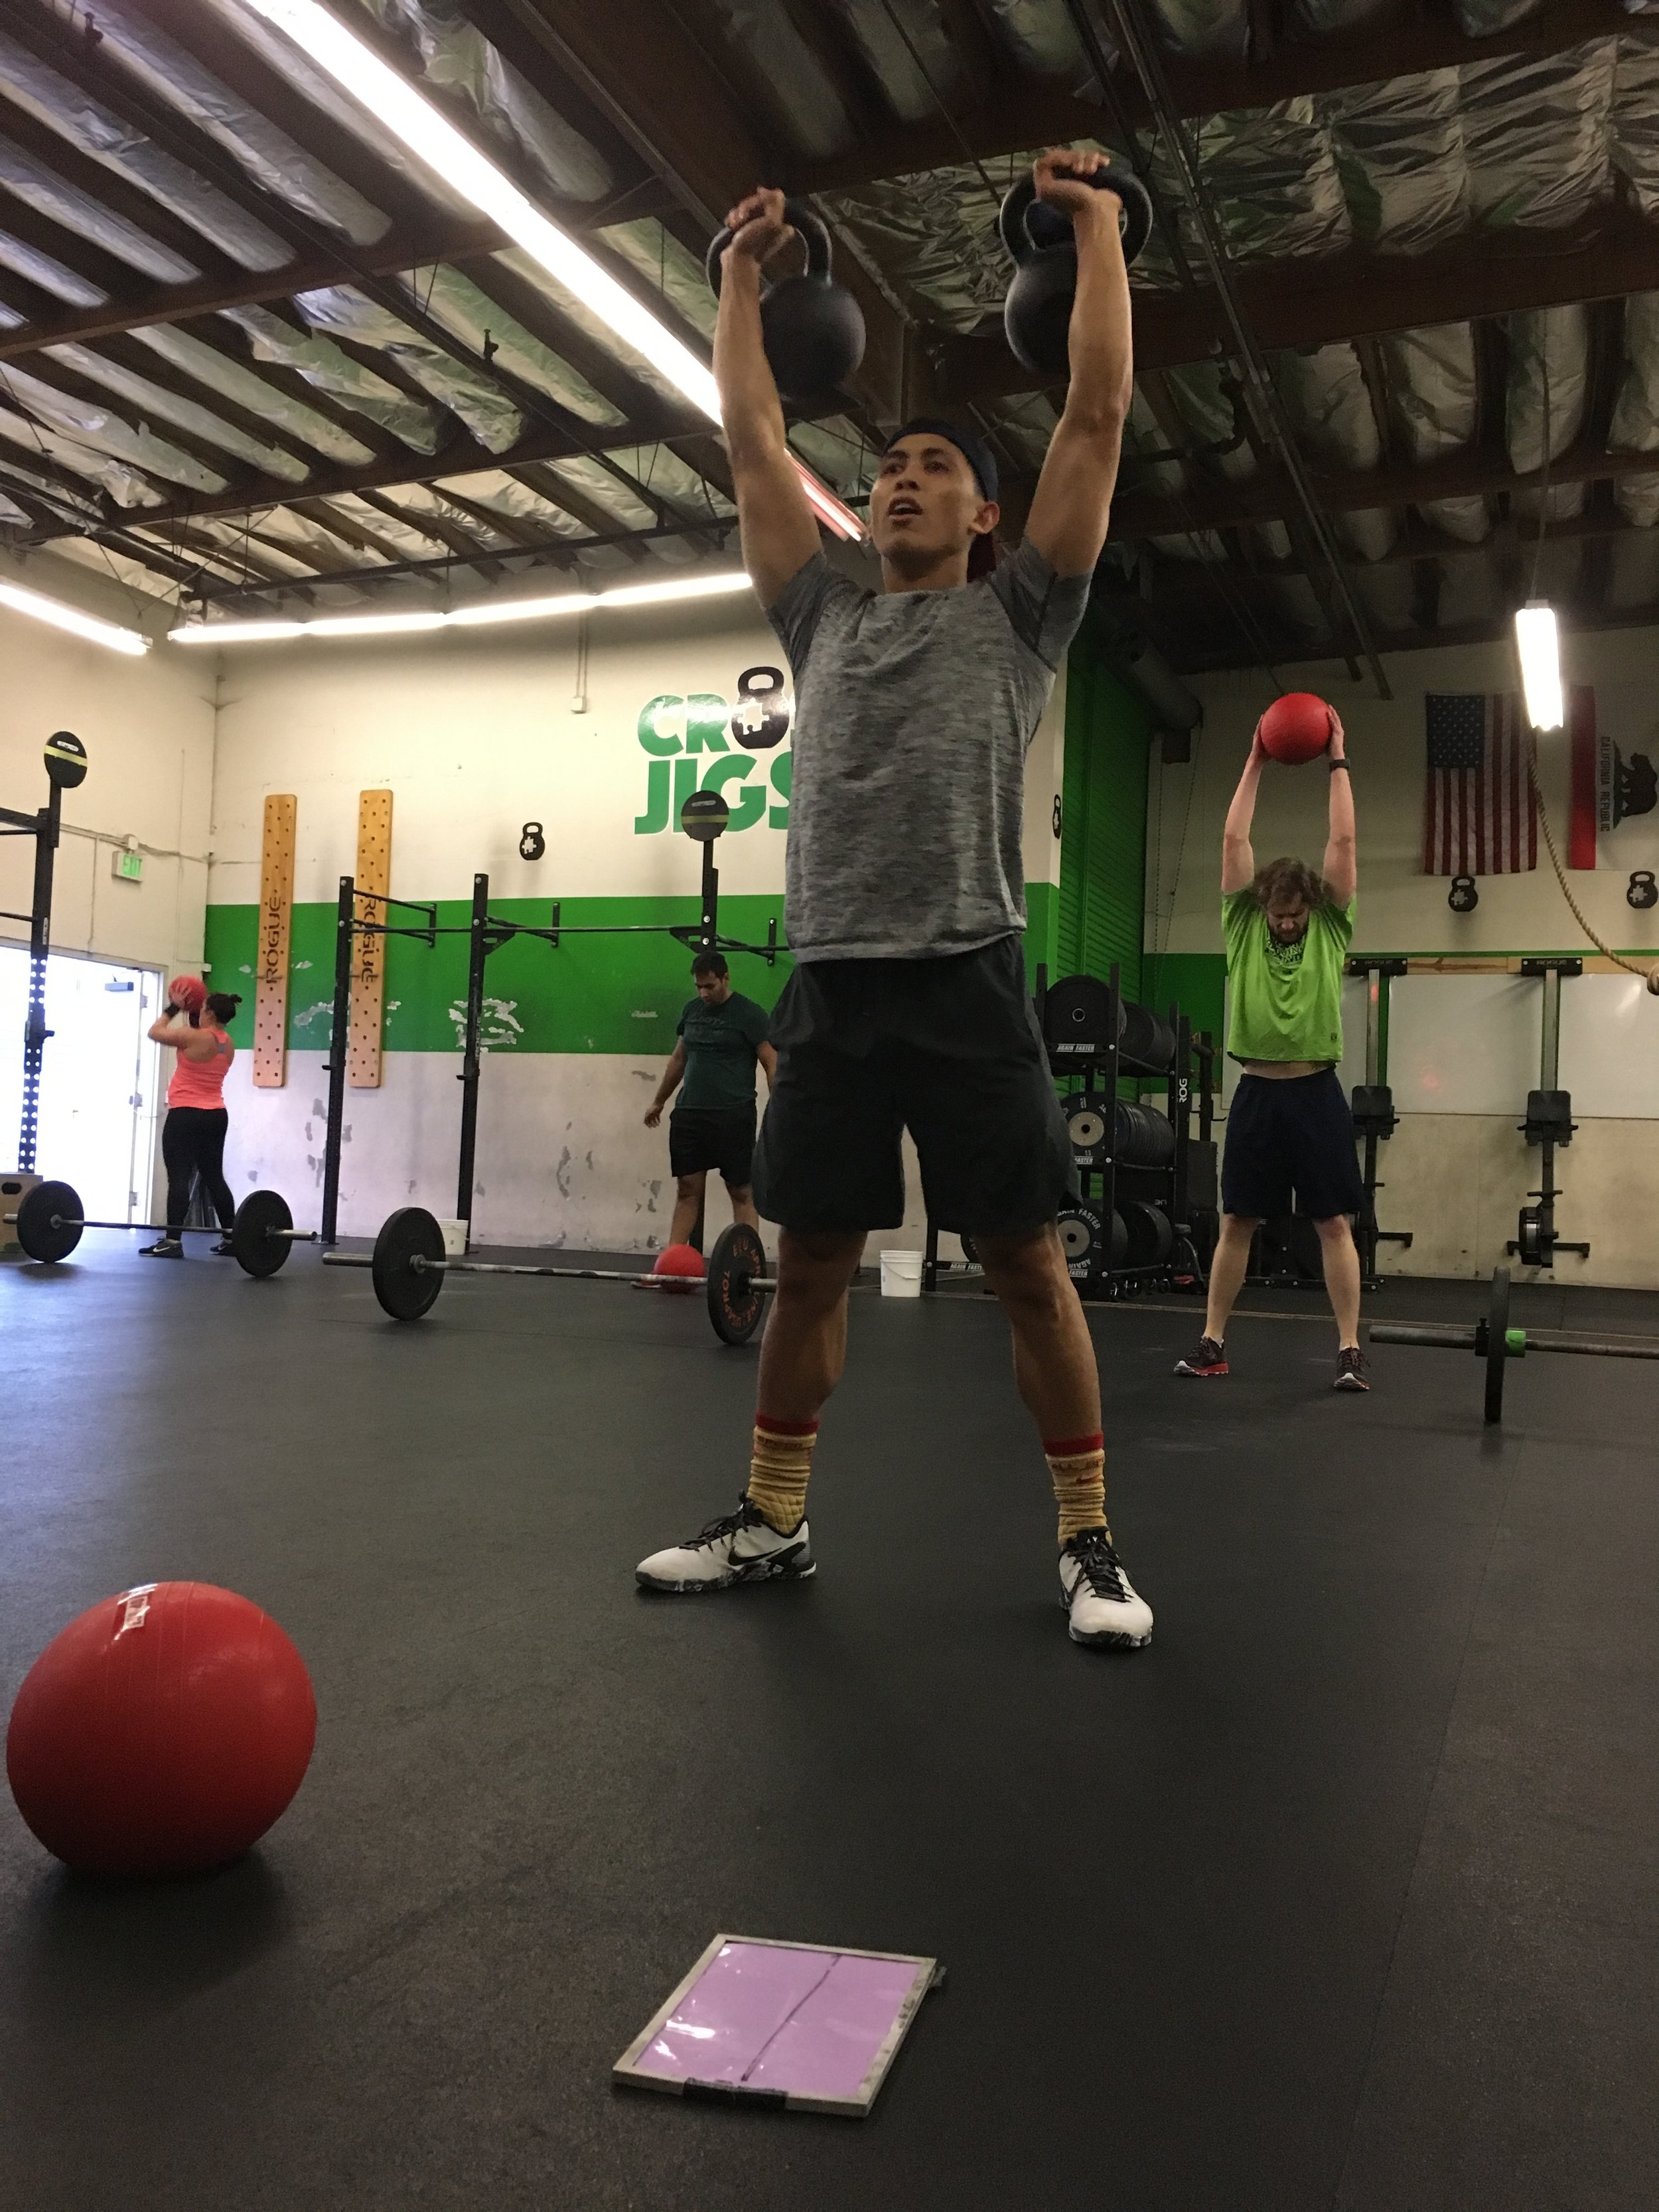 EJ took on the challenge of Kettlebells over a barbell